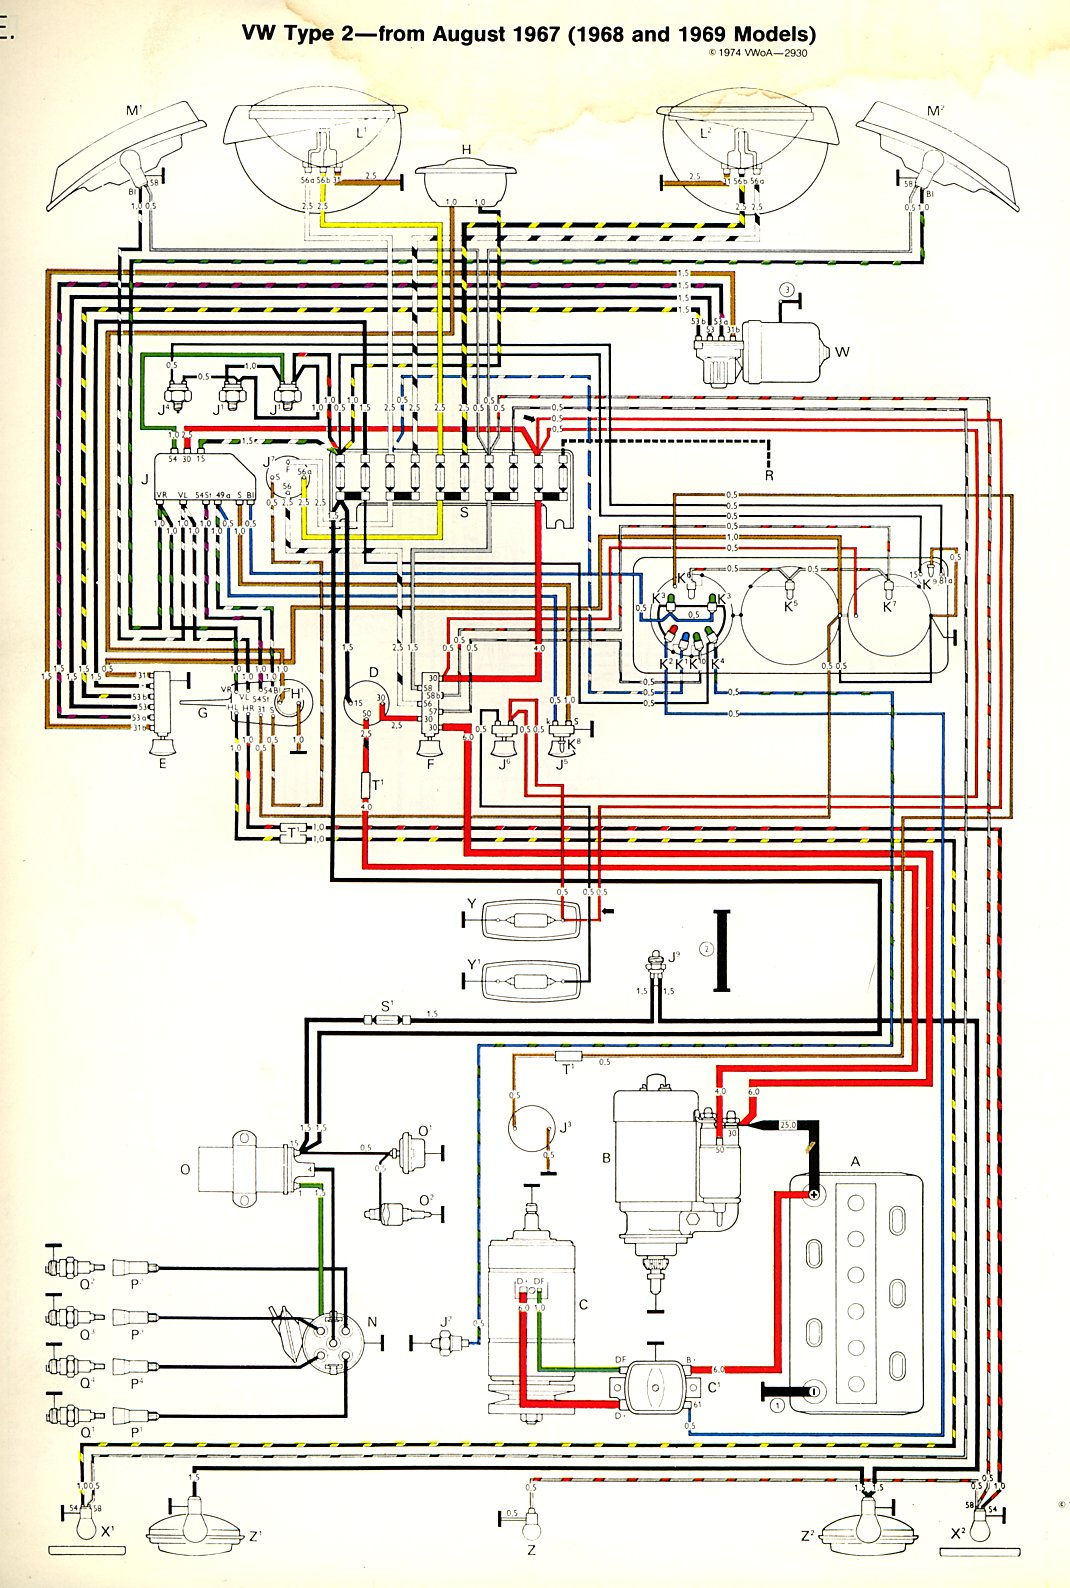 B020 1972 Super Beetle Fuse Box Diagram | Wiring LibraryWiring Library